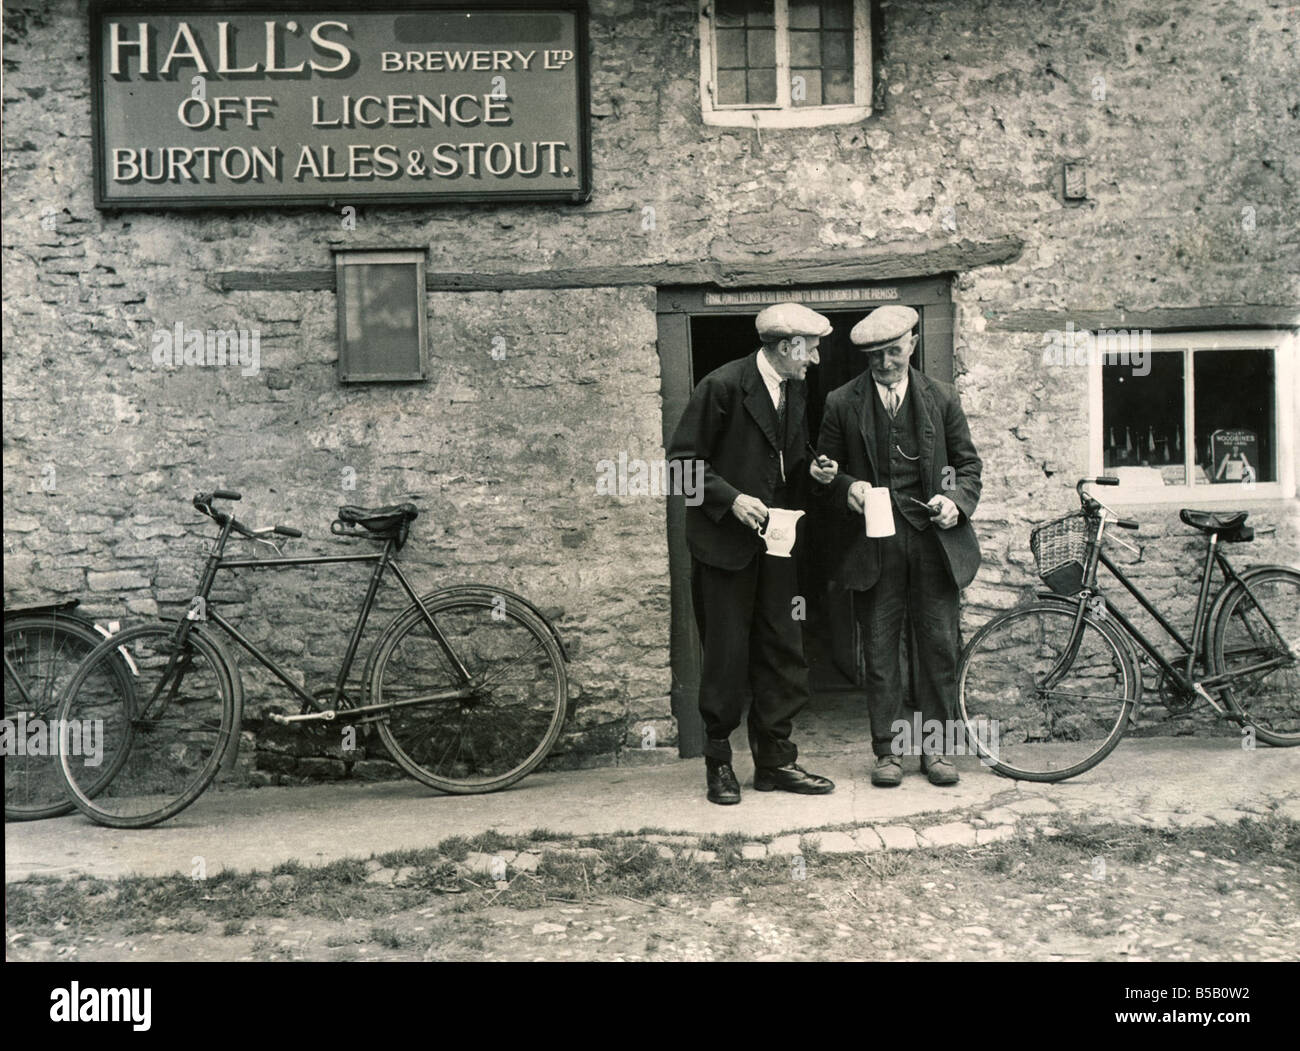 Halls Brewery Off Licence Burton Ales Stout in Bucknell Oxford The village does not have a pub so locals have to - Stock Image